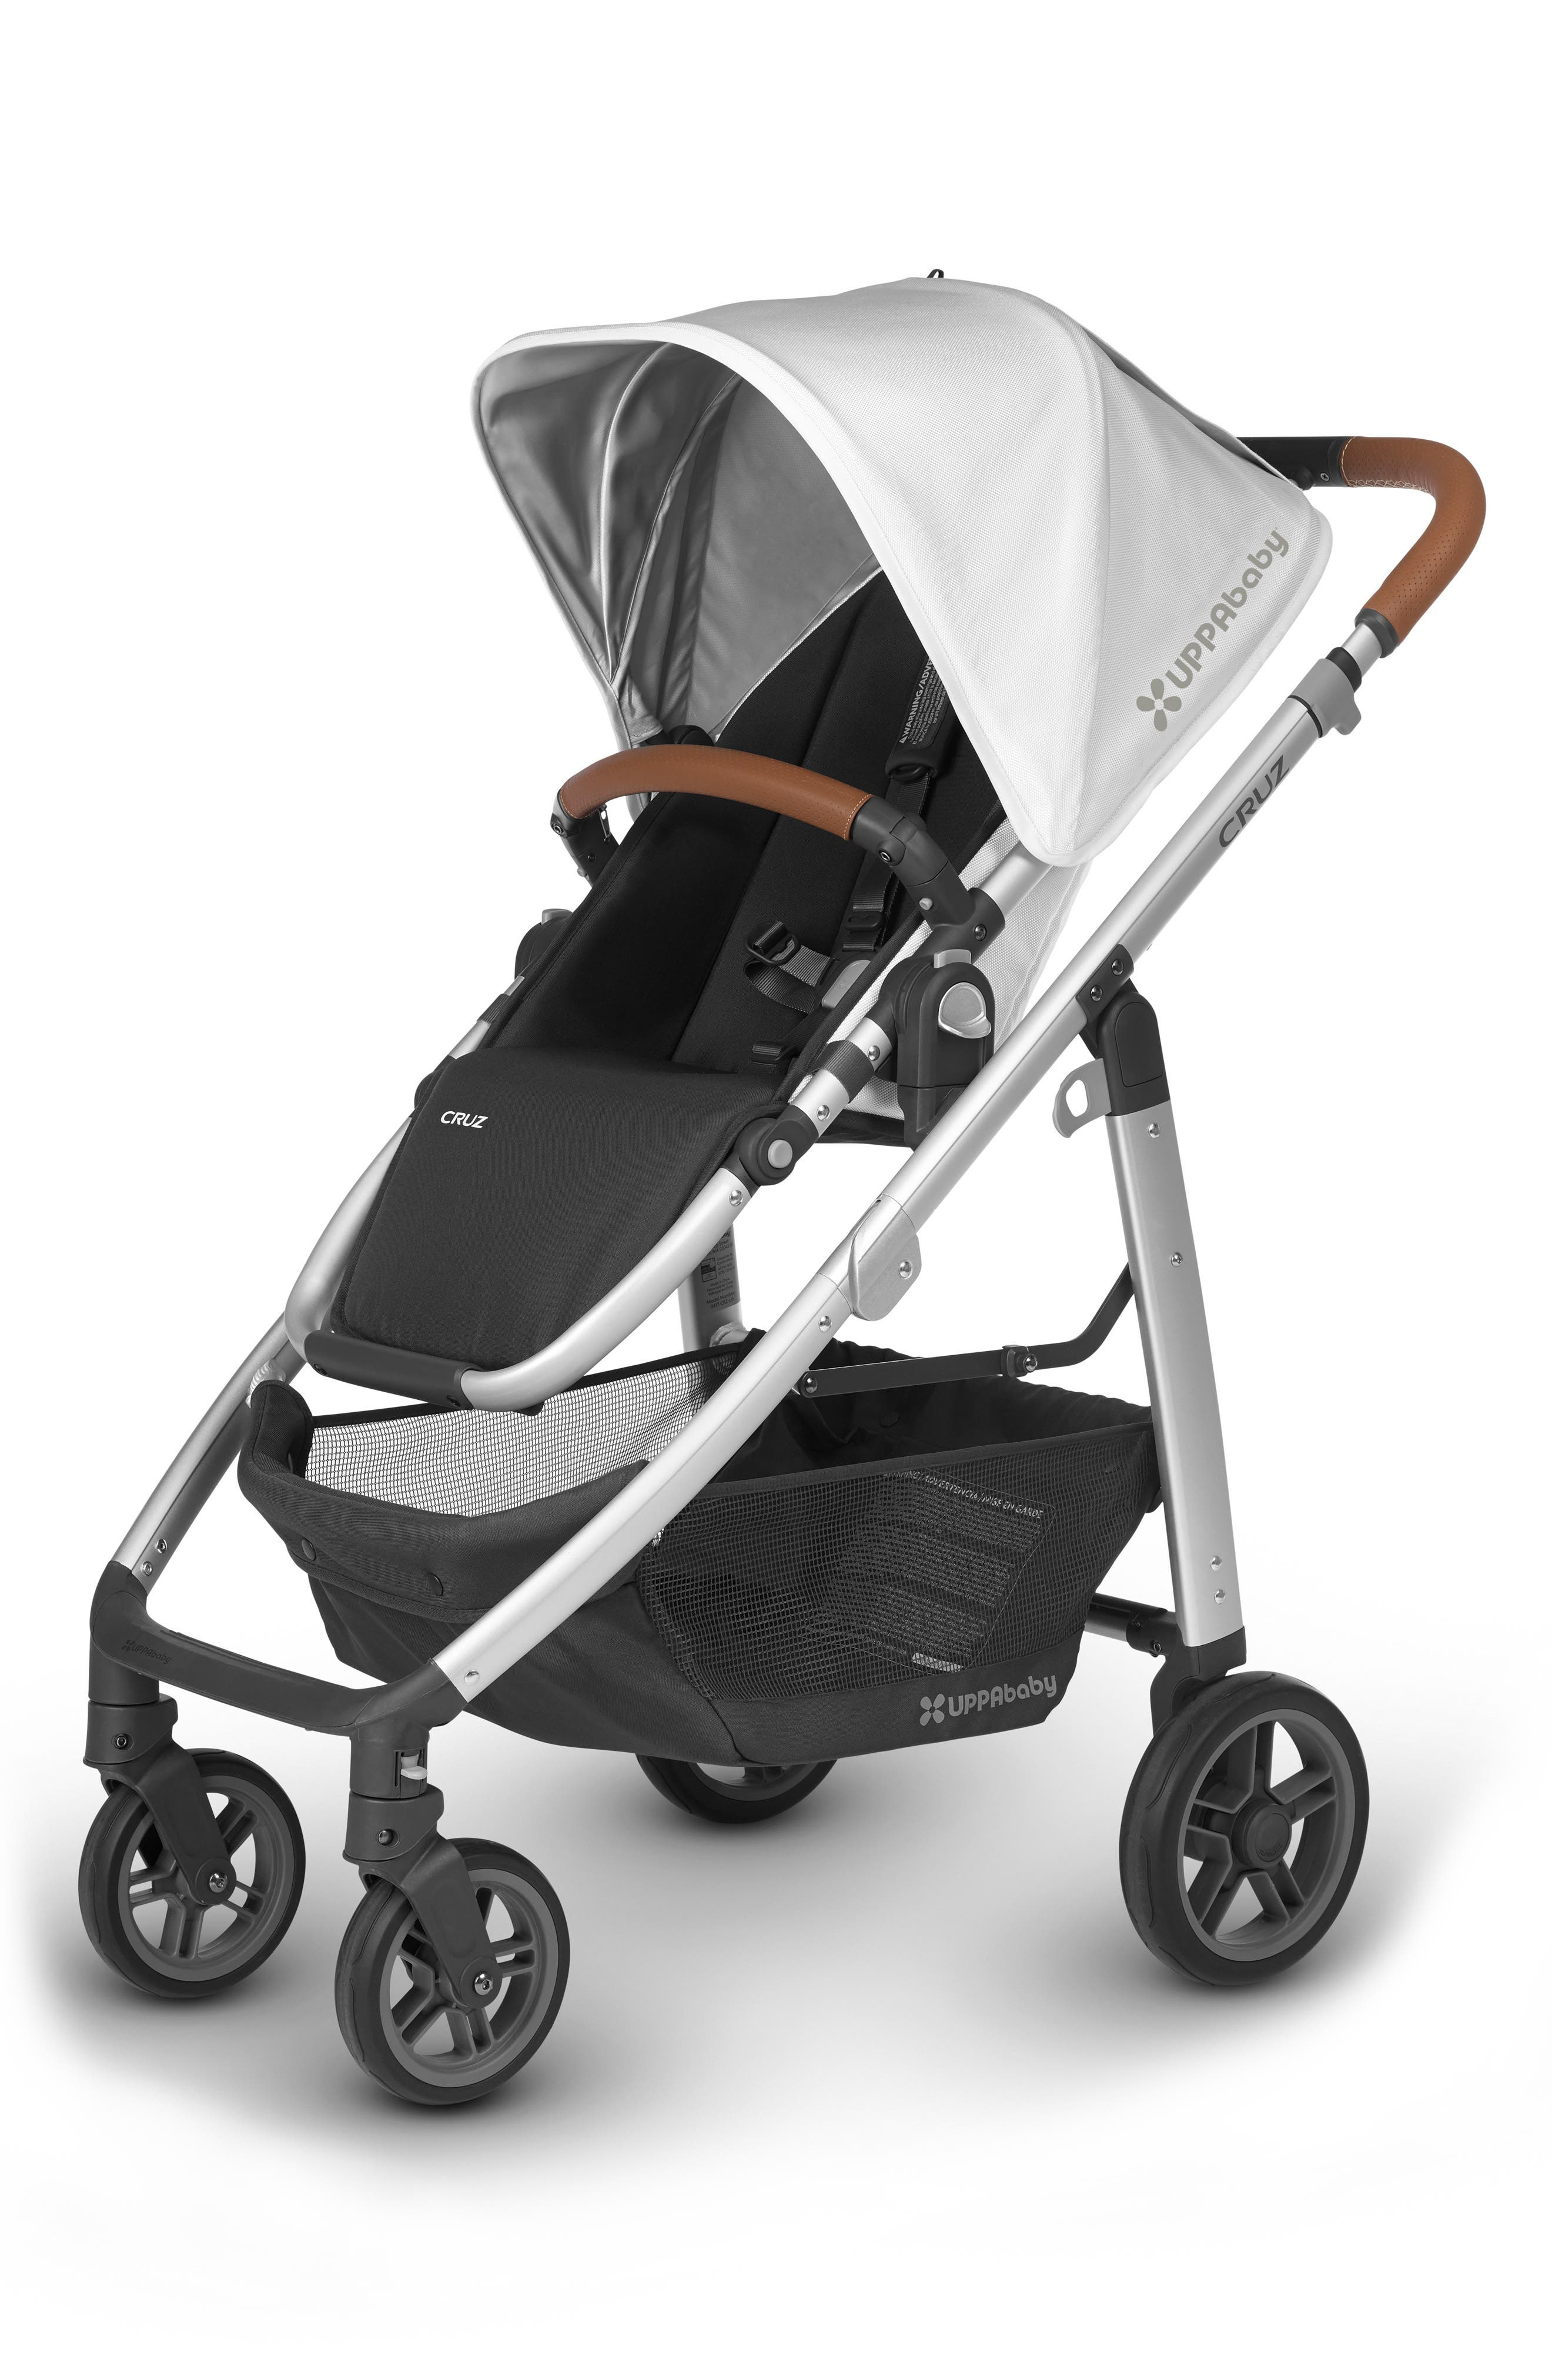 2017 VISTA Aluminum Frame Convertible Stroller with Bassinet & Toddler Seat,                             Main thumbnail 1, color,                             White/ Silver